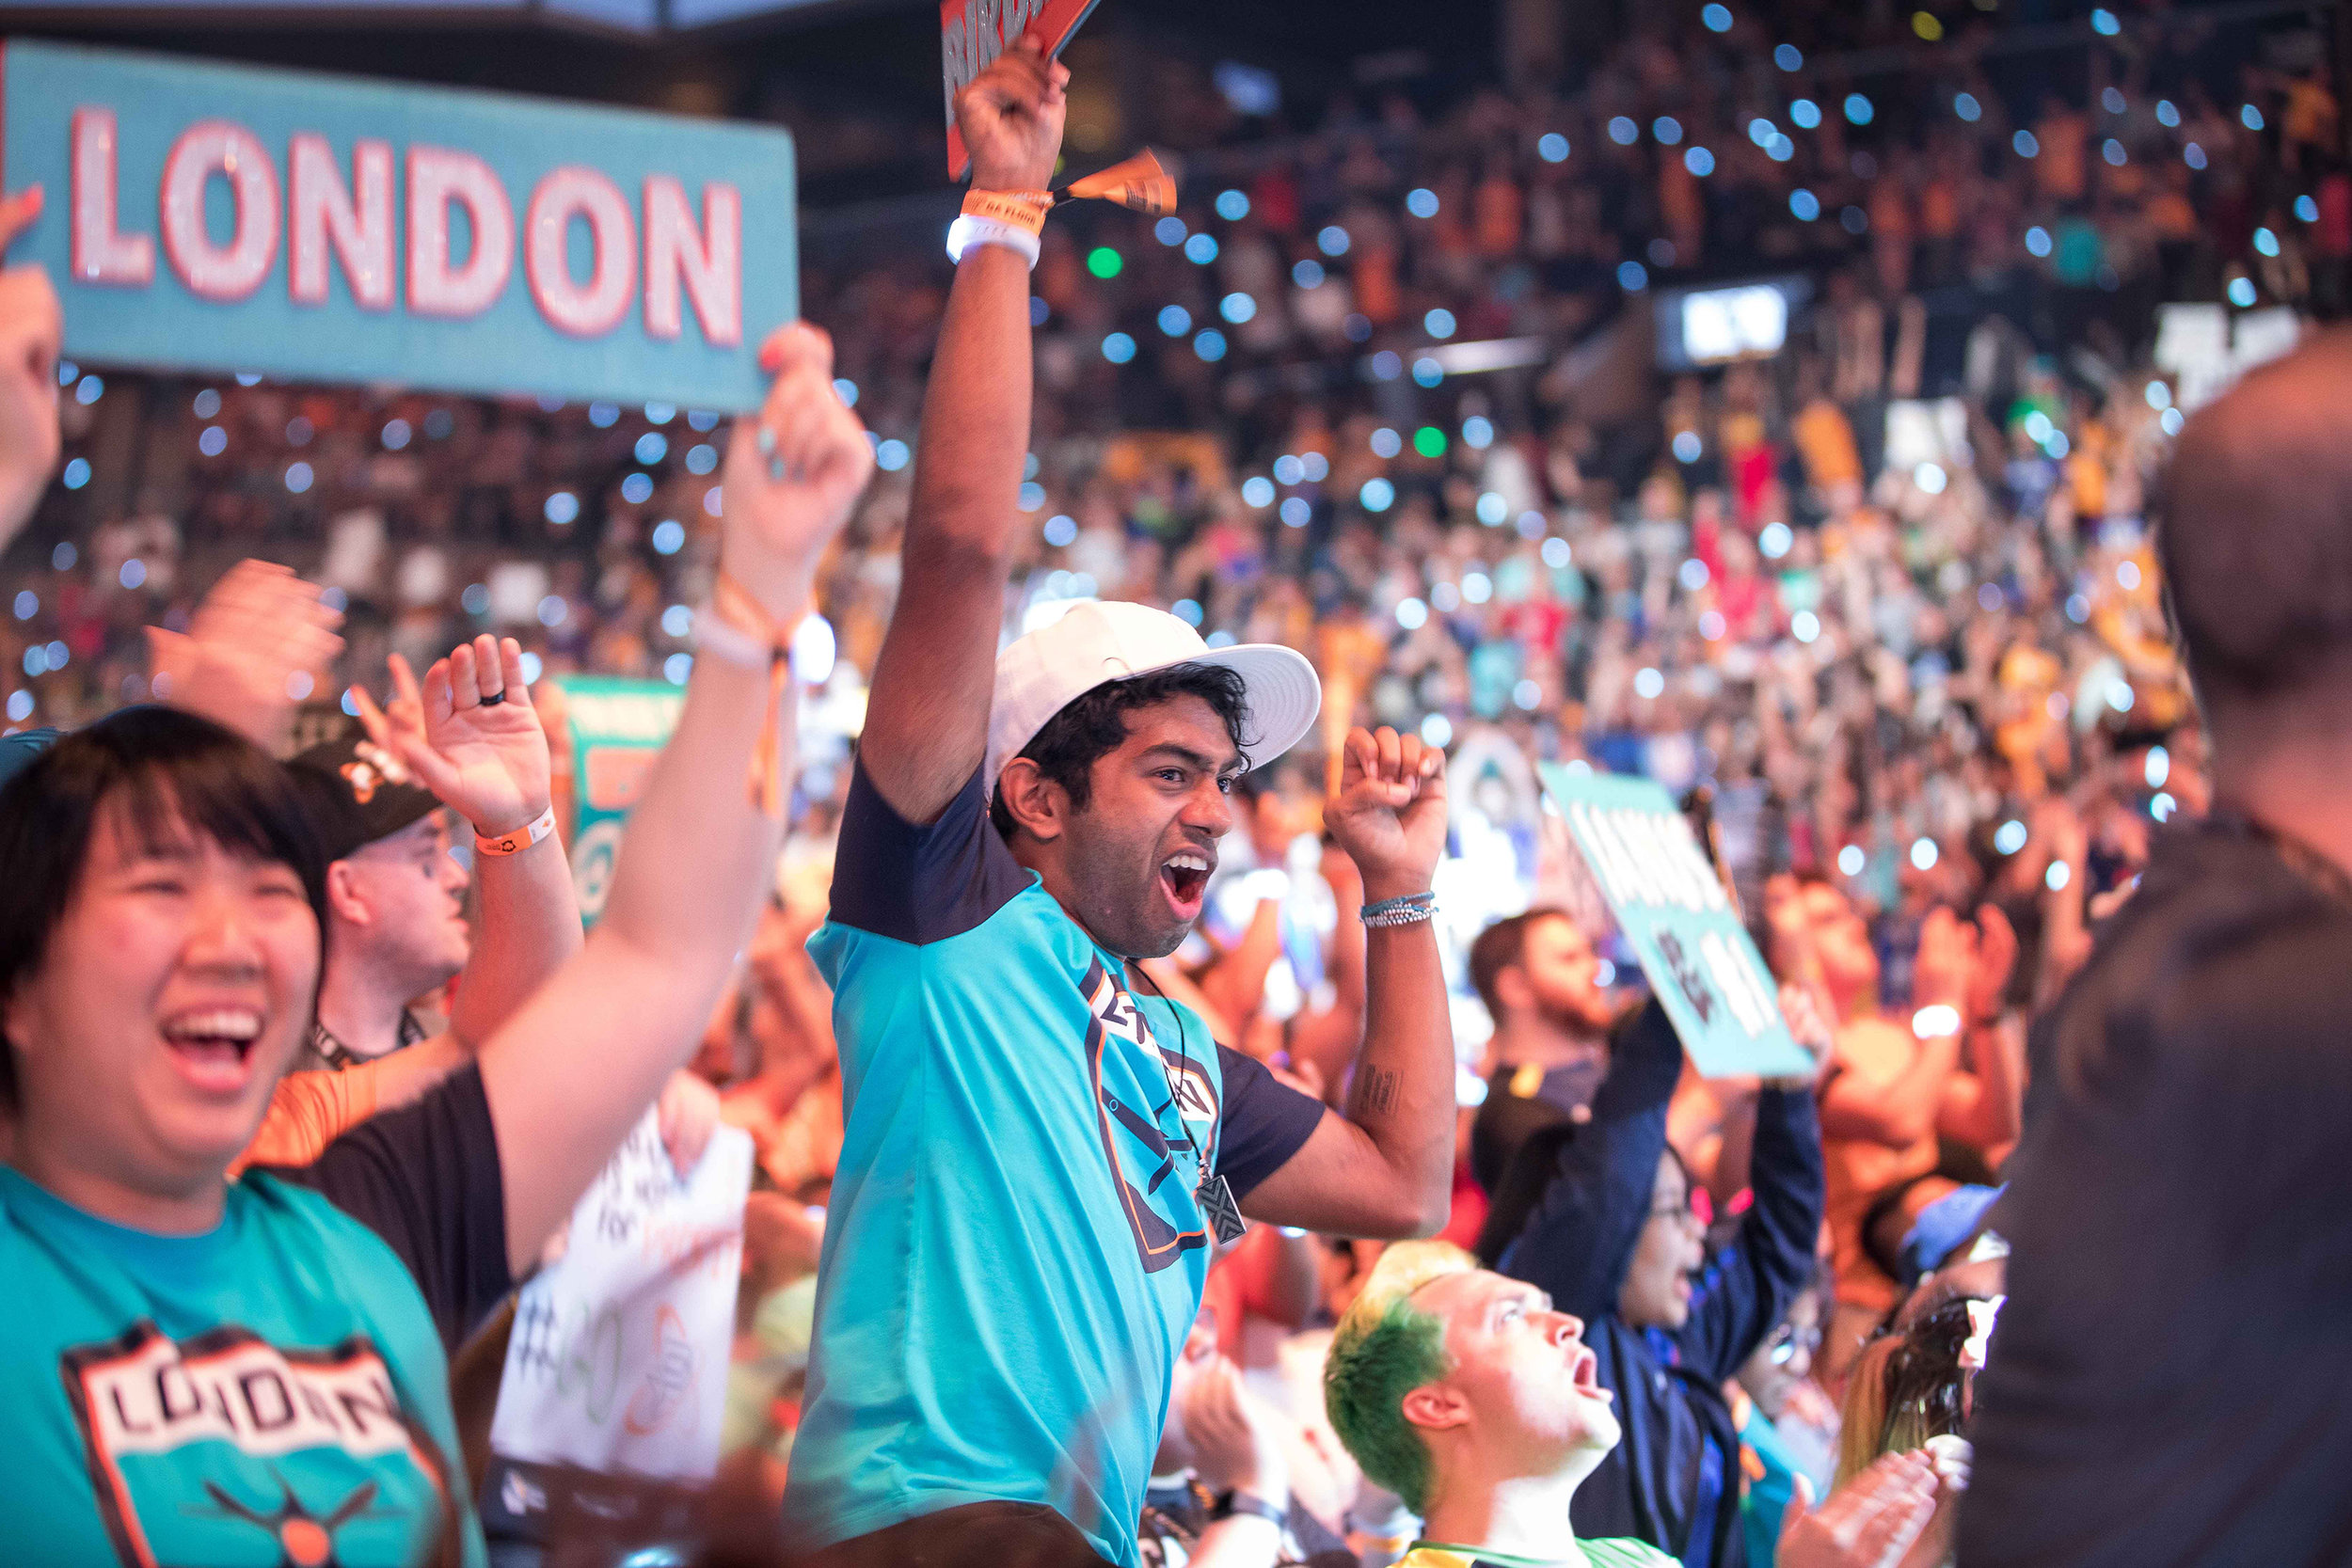 Overwatch League Grand Finals, London Spitfire fans going wild after championship win over Philadelphia Fusion at Barclays Center on July 27, 2018 in Brooklyn, New York.  Photo by Hannah Smith / ESPAT Media